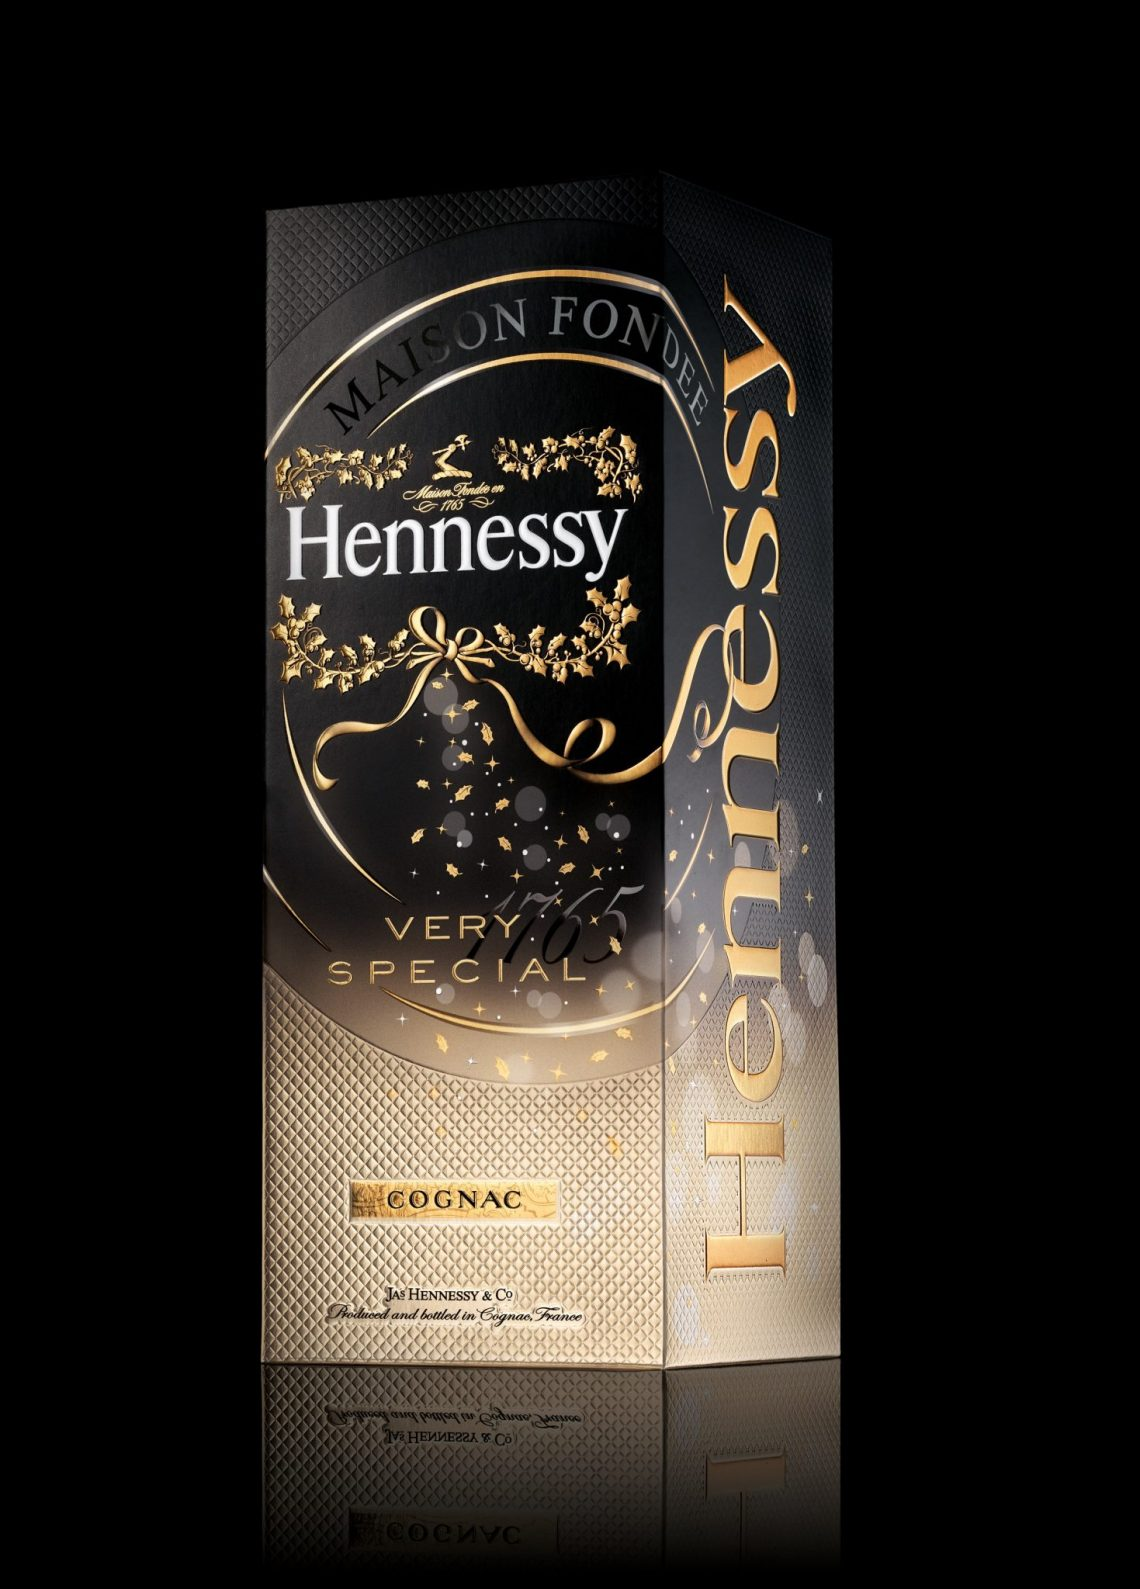 GIFT BOX FD NOIR RVB Hennessy Very Special Gift Packs Created by ButterflyCannon - EAT LOVE SAVOR International luxury lifestyle magazine and bookazines